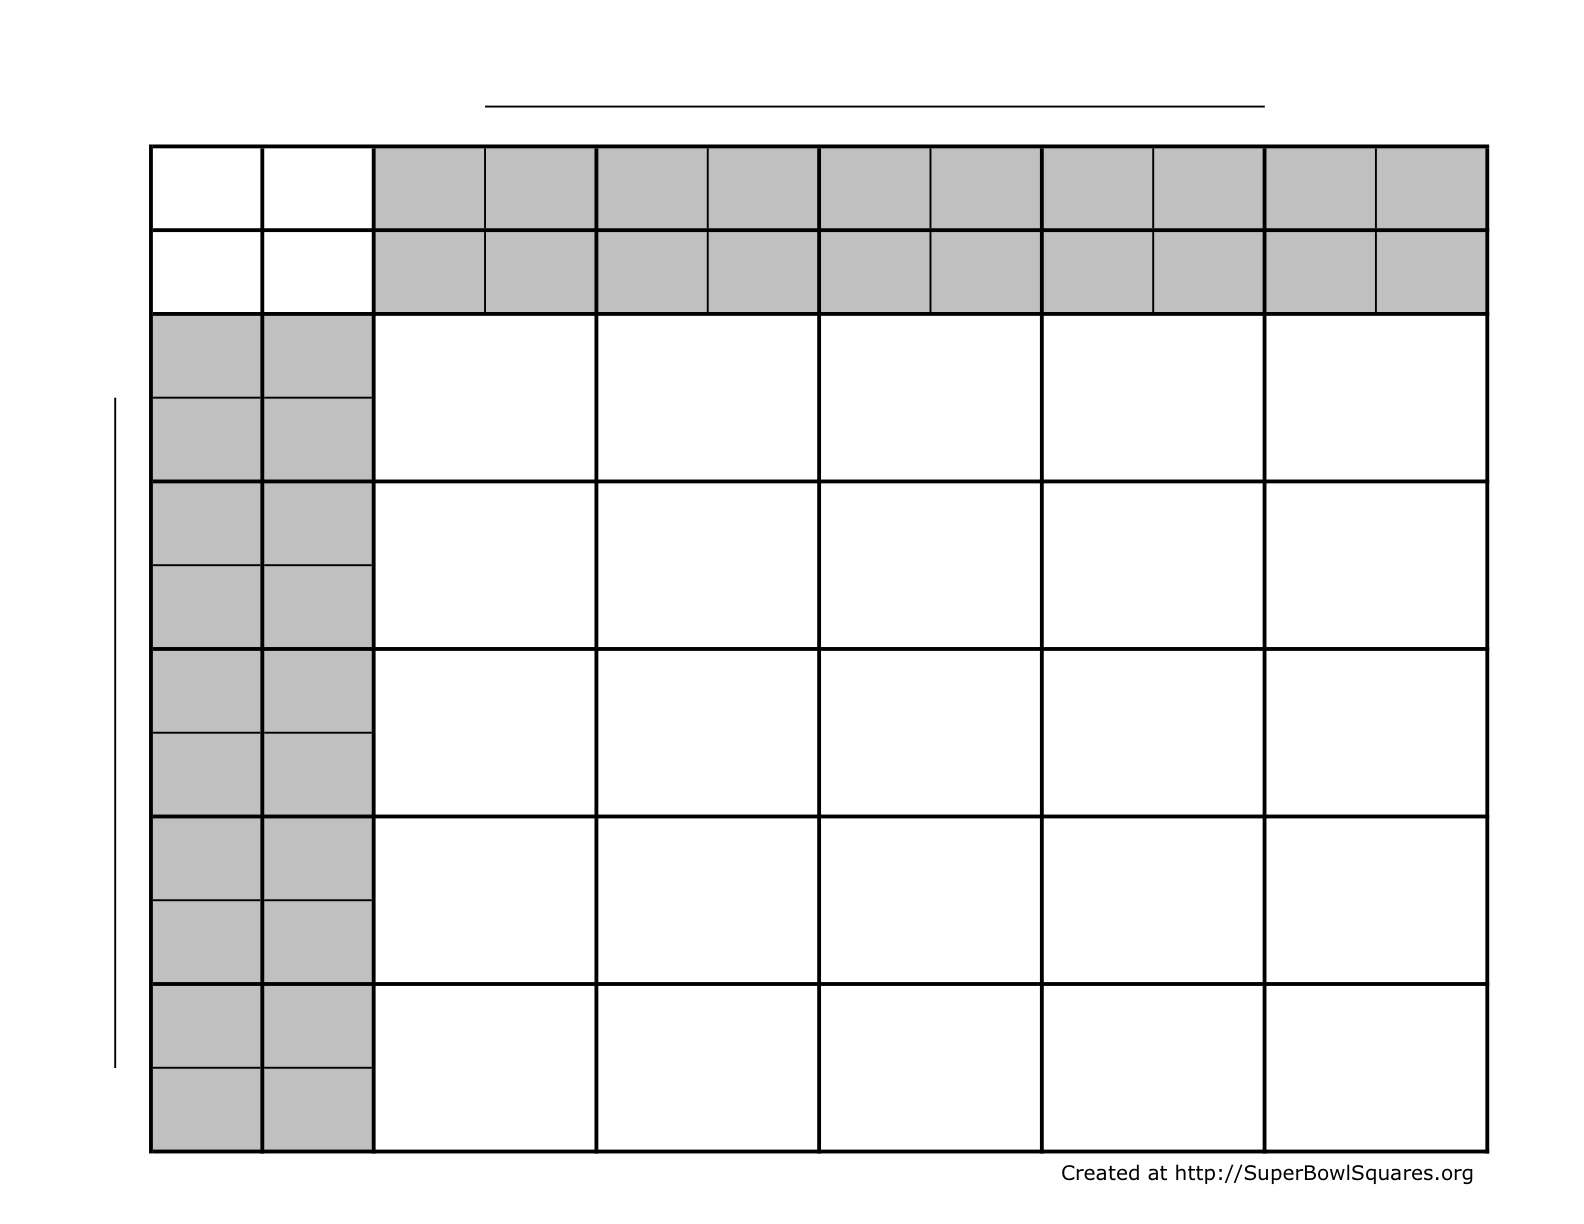 image relating to 10x10 Grids Printable called Printable Soccer Squares Sheets